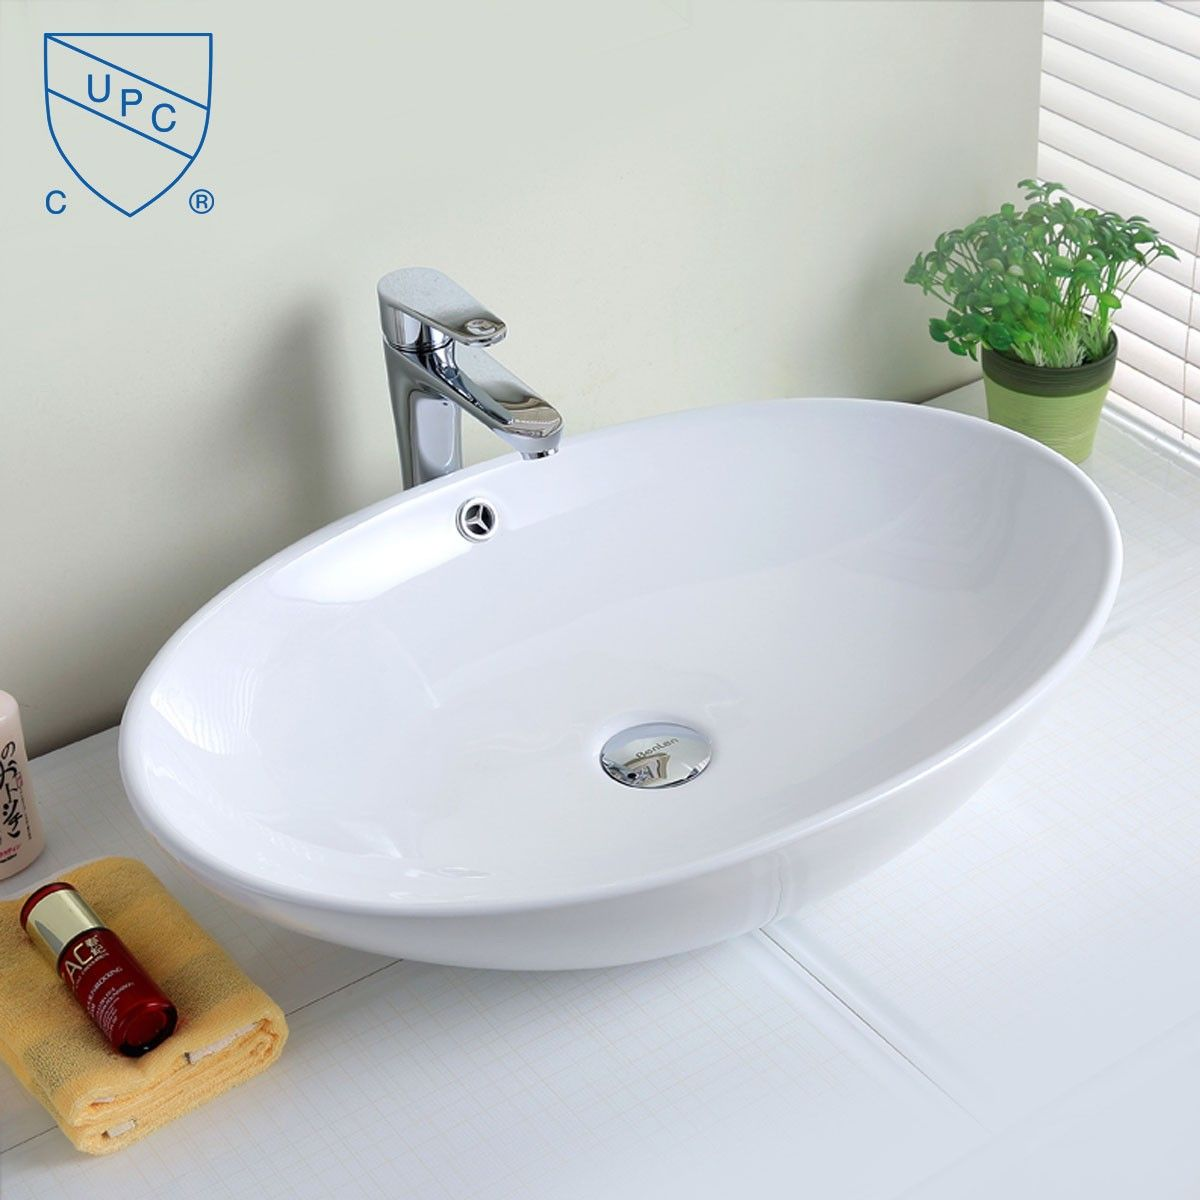 Above counter bathroom sinks canada - Decoraport White Oval Ceramic Above Counter Basin Cl 1164